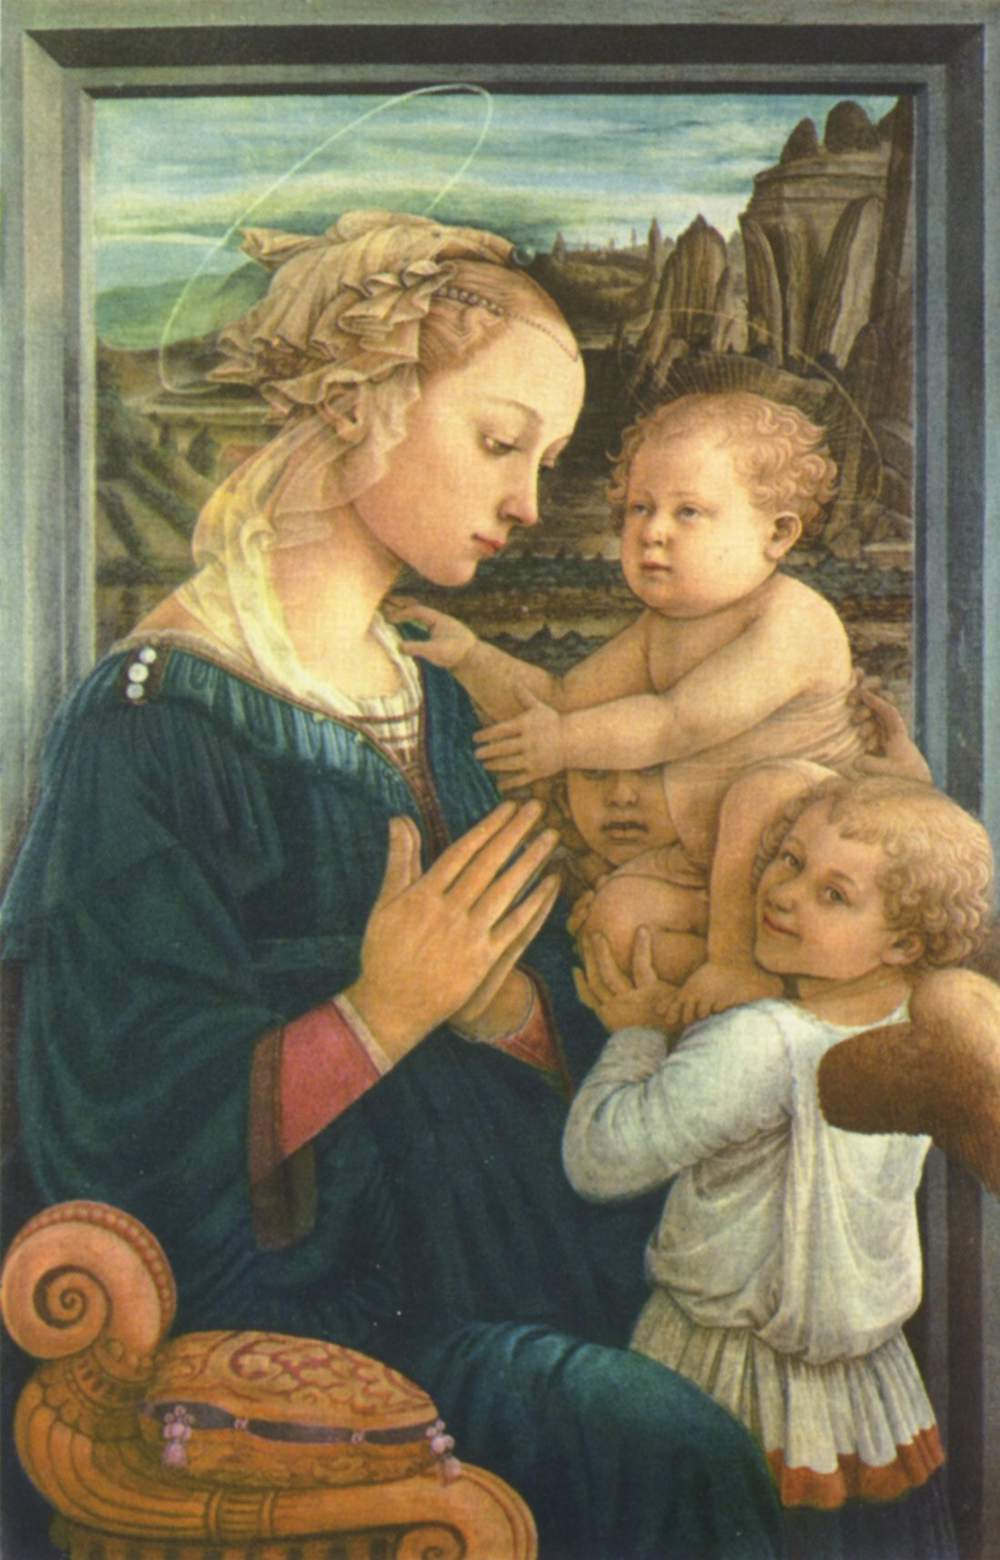 Uffizi Gallery - Madonna with Child and Two Angels by Fra Filippo Lippi